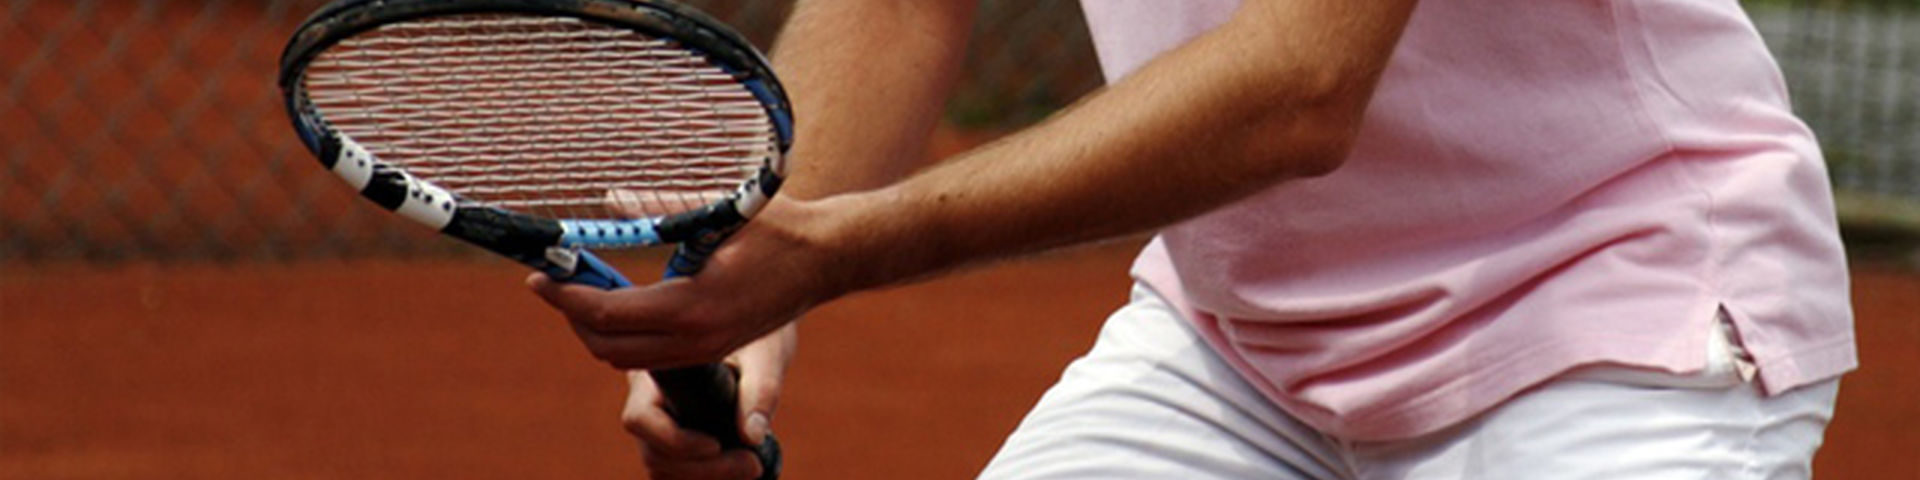 Header: Tennisarm